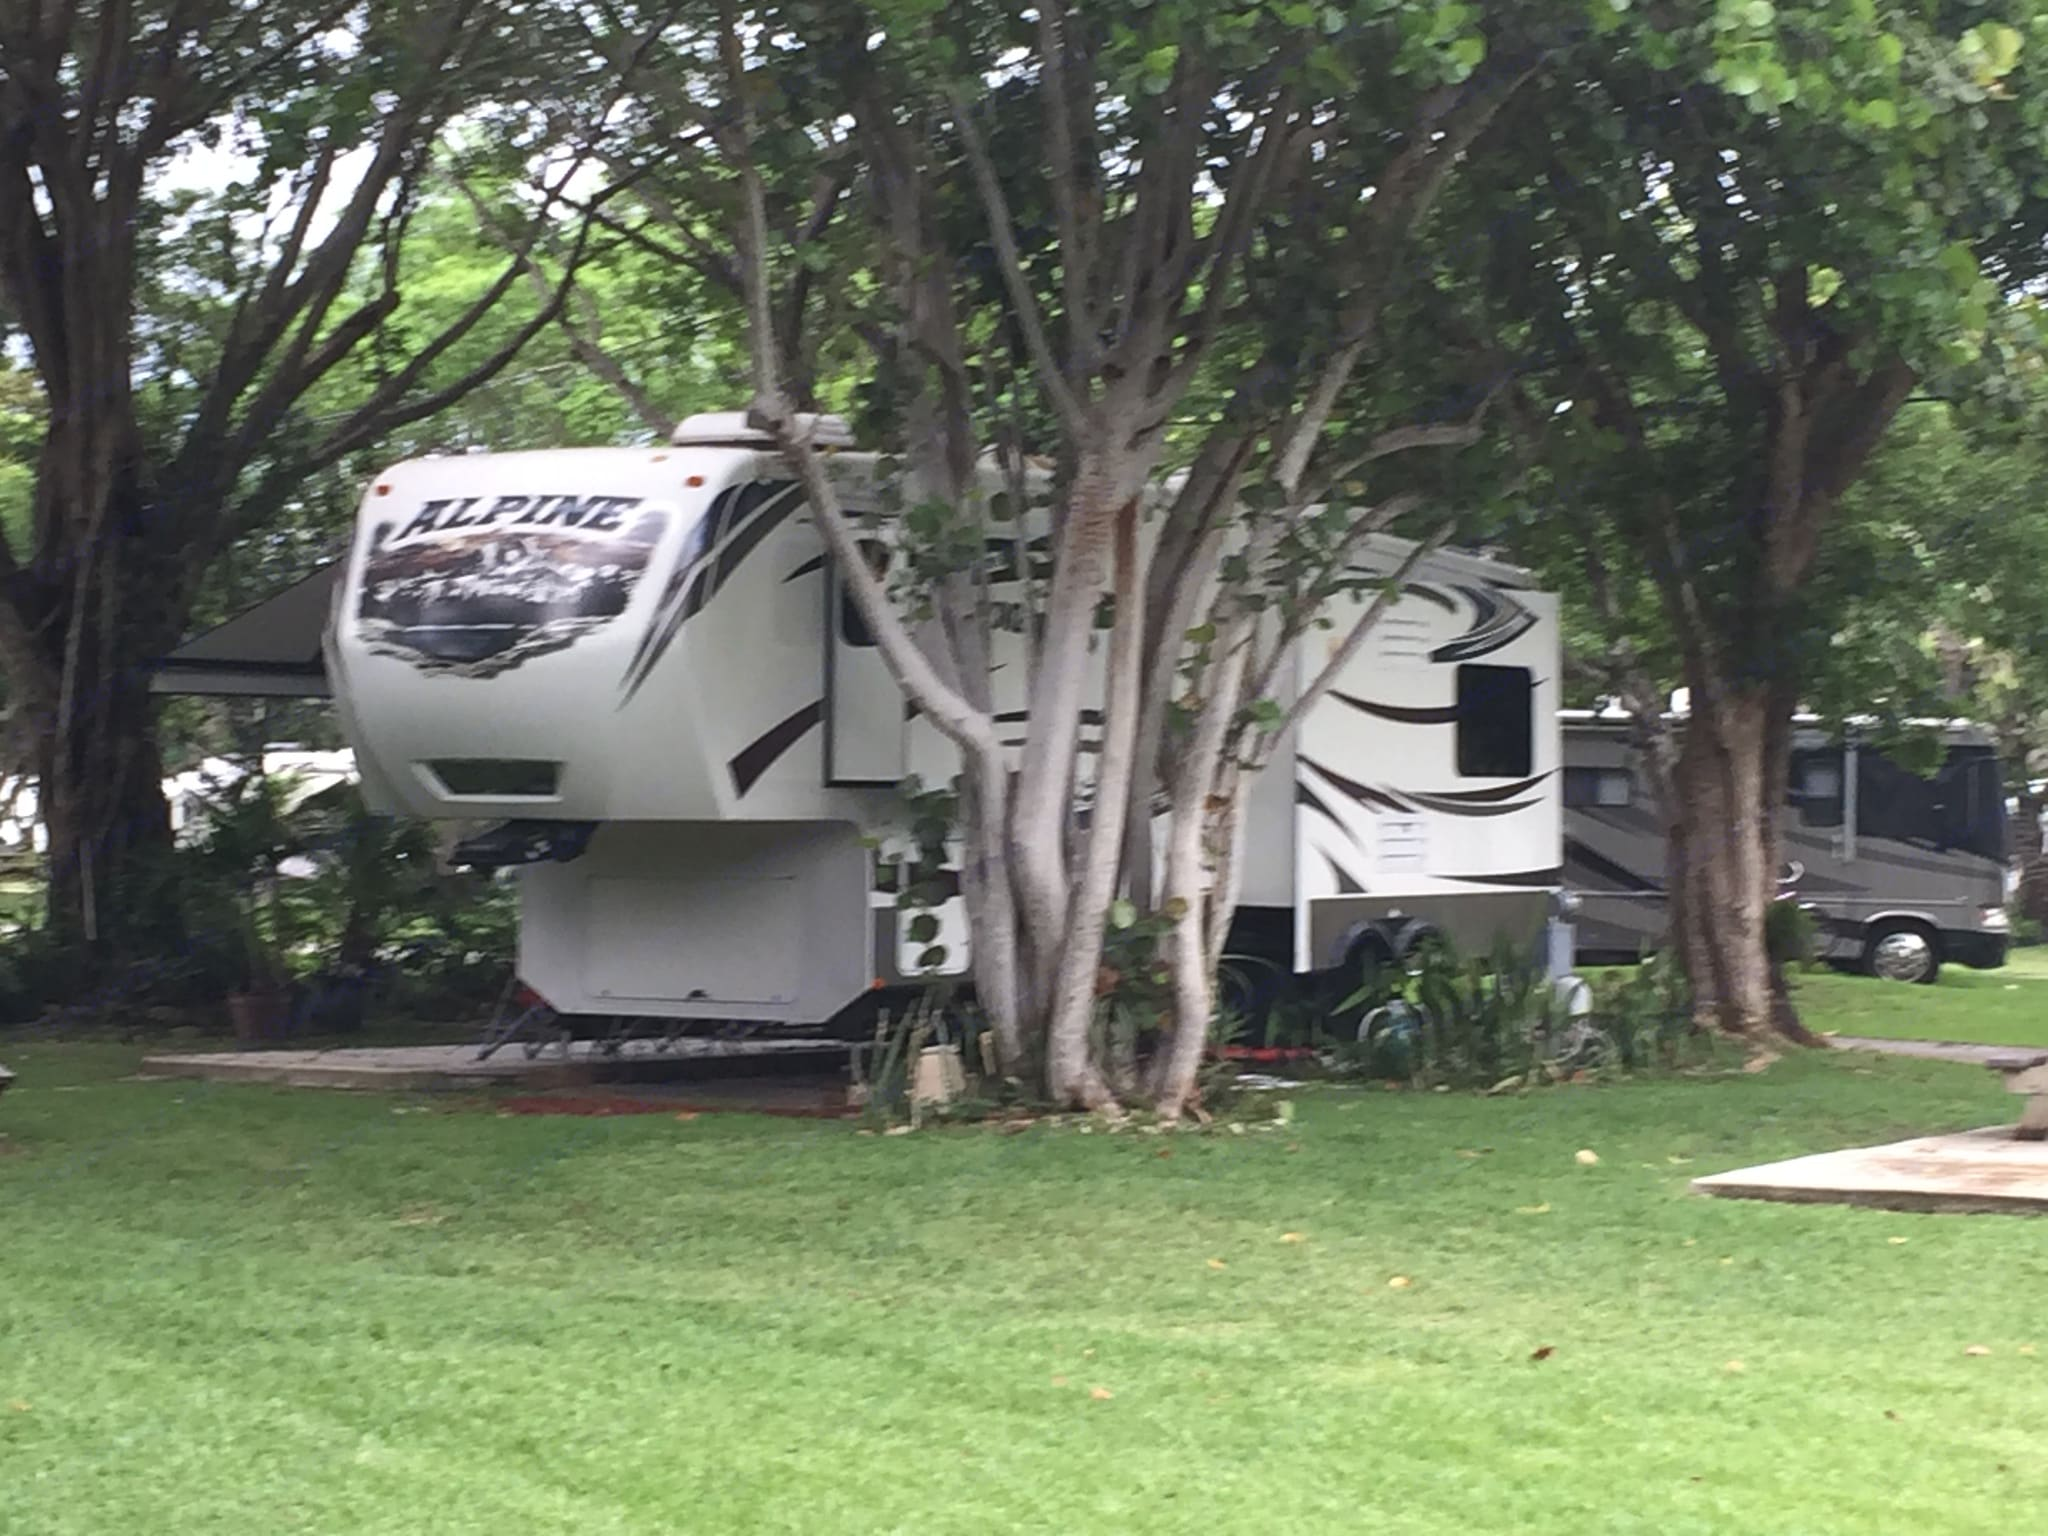 These photos were taken at the Miami Everglades Resort....it's beautiful!  The campground used to be an avocado orchard and most sites enjoy a wonderful canopy of banyans, oaks, mangos and avocados!. Keystone Alpine 2014